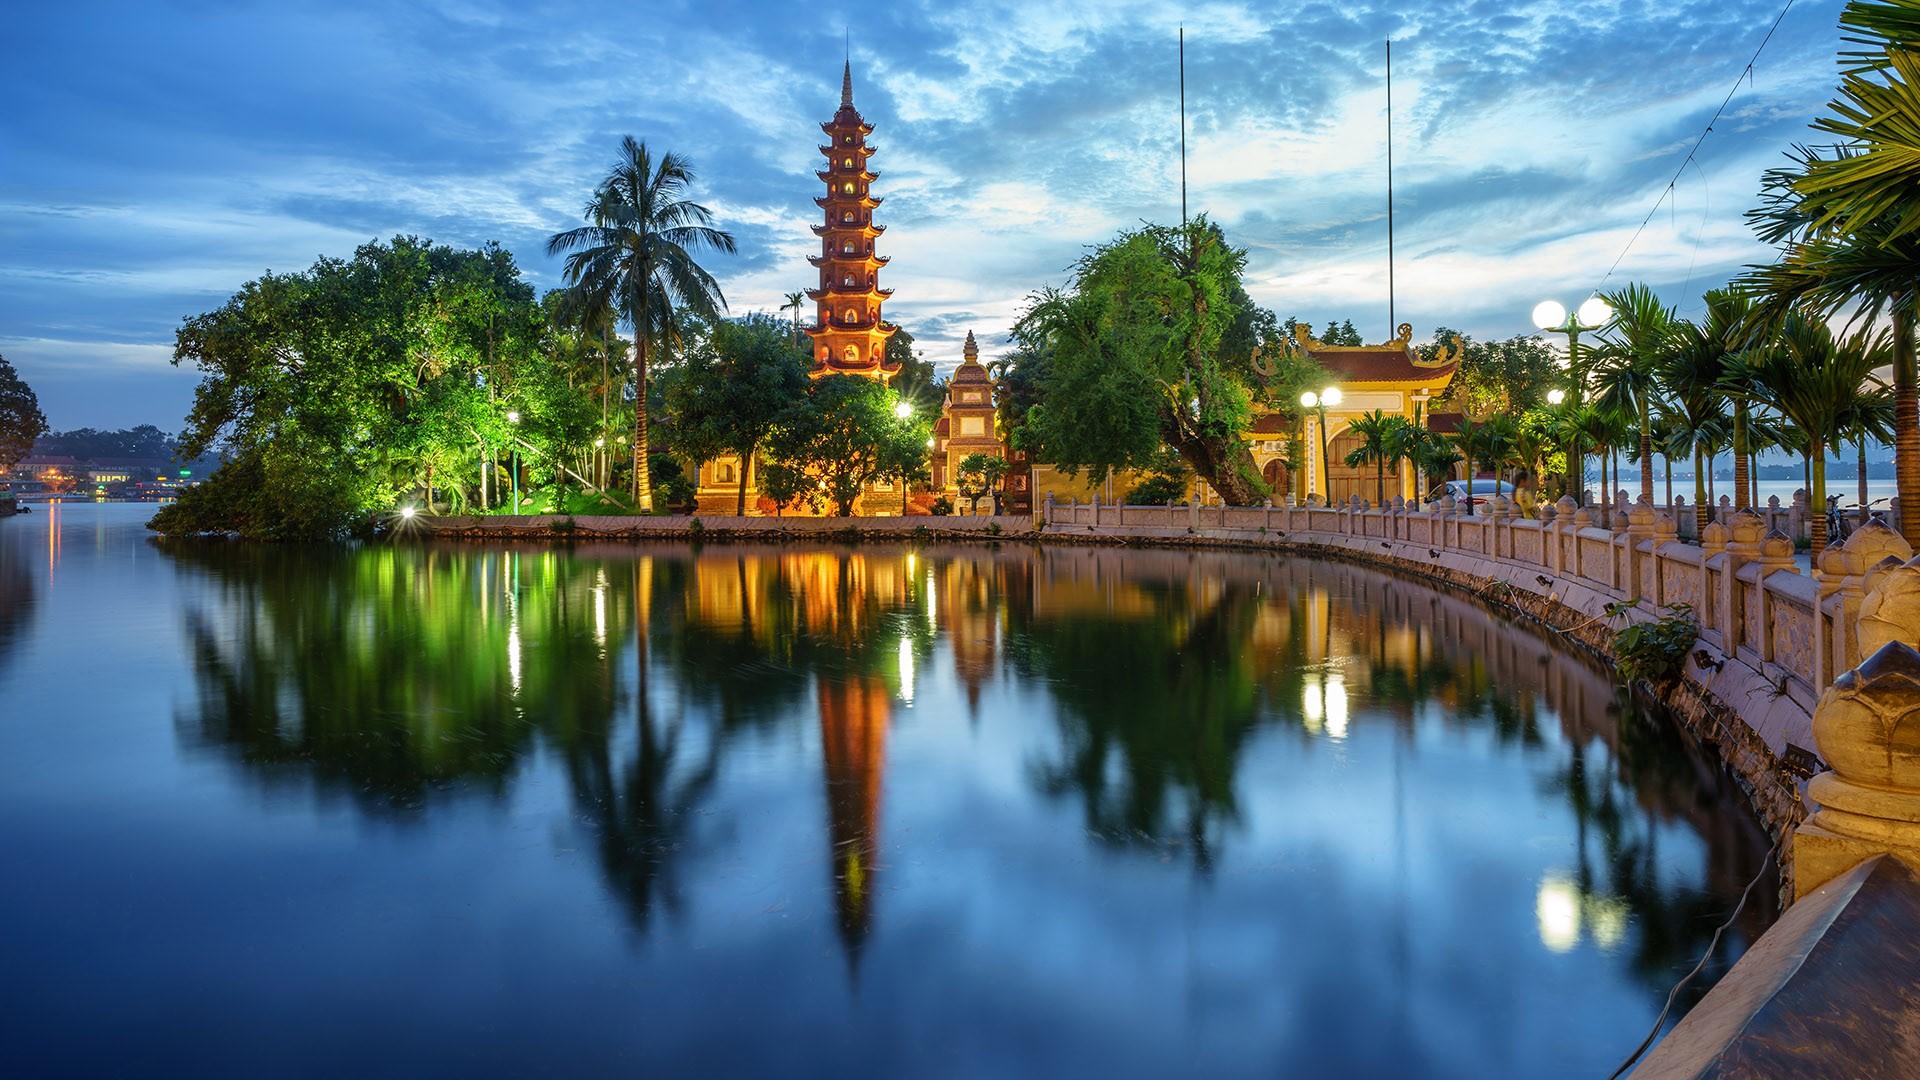 Panorama view of Trấn Quốc pagoda, the oldest temple in Hanoi, Vietnam    Windows 10 Spotlight Images